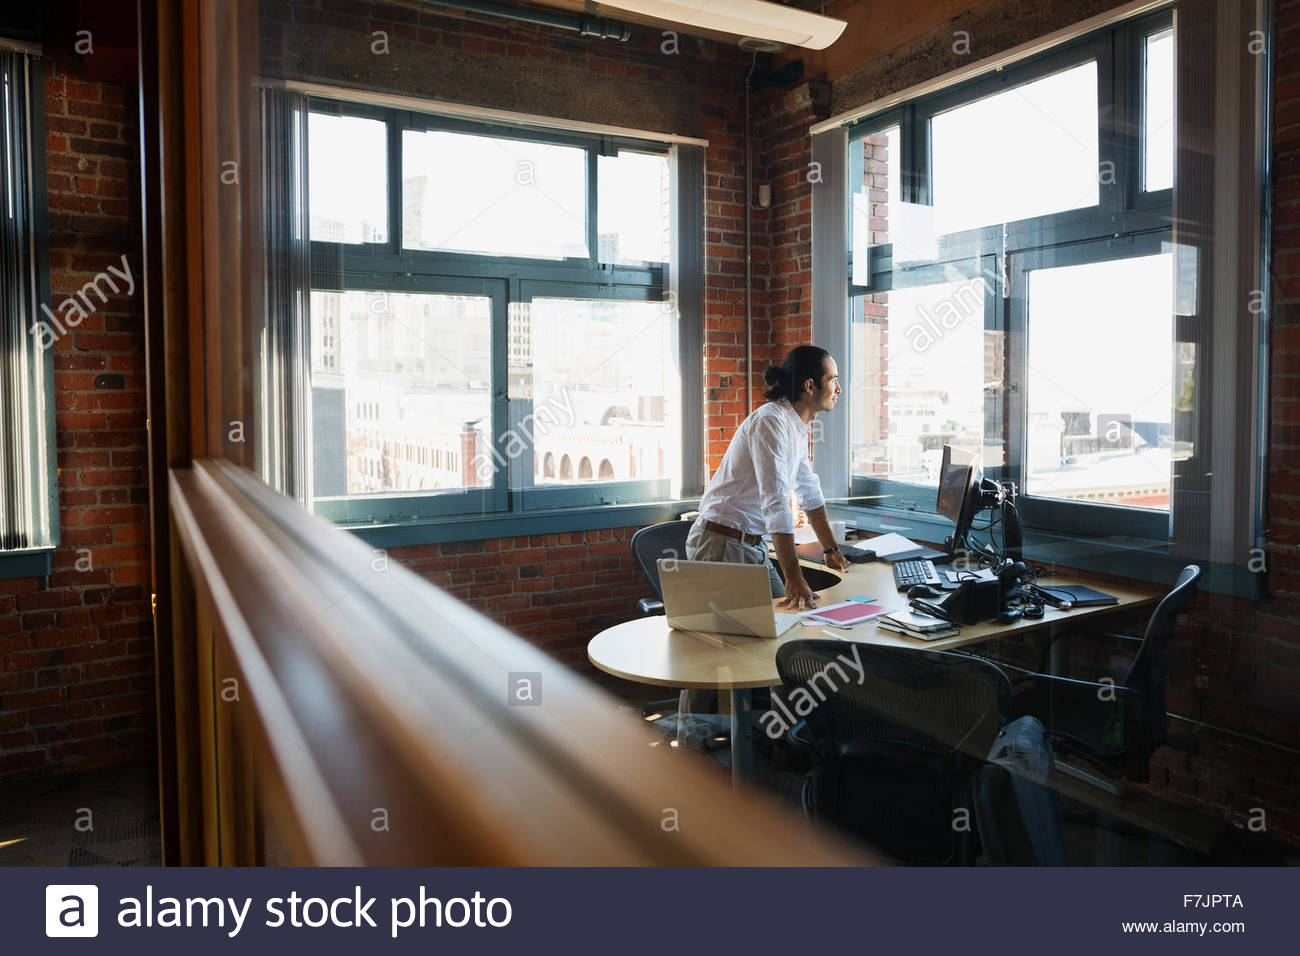 Pensive businessman looking out office window - Stock Image